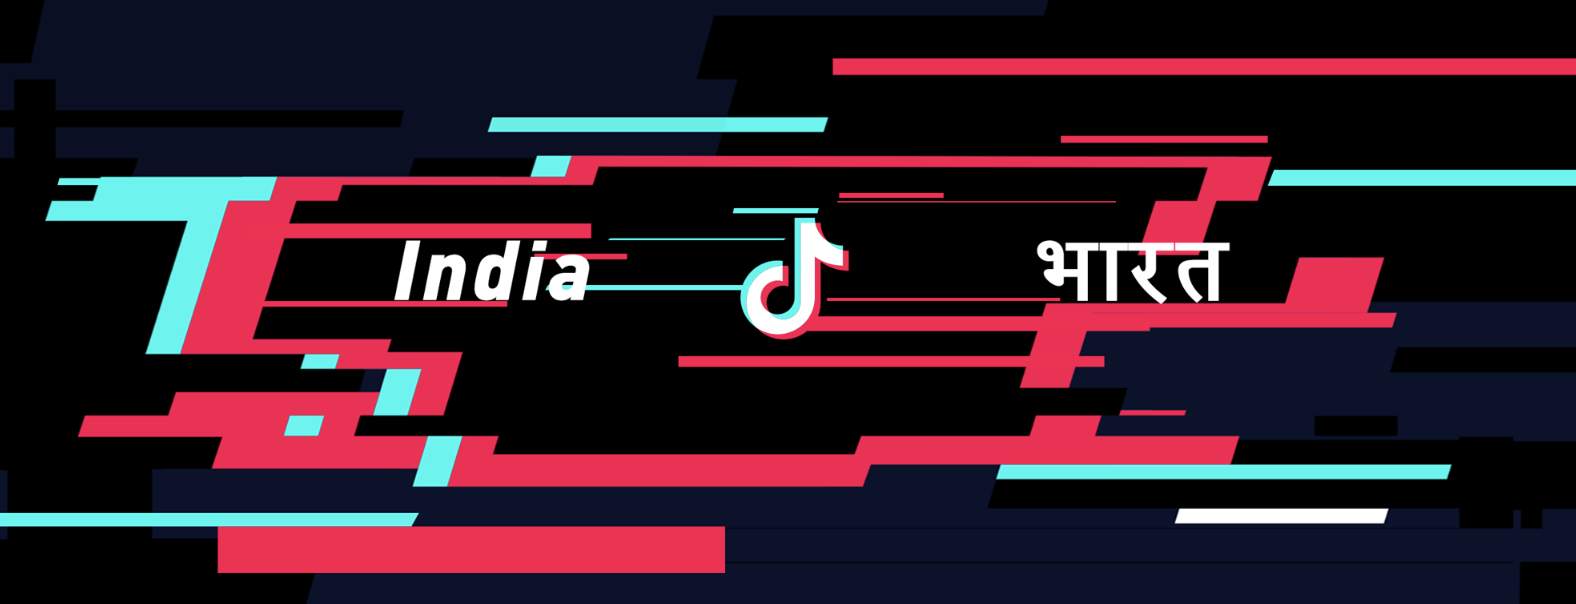 Indian TikTok Fans Fall Victim to Cybercrime After China Ban